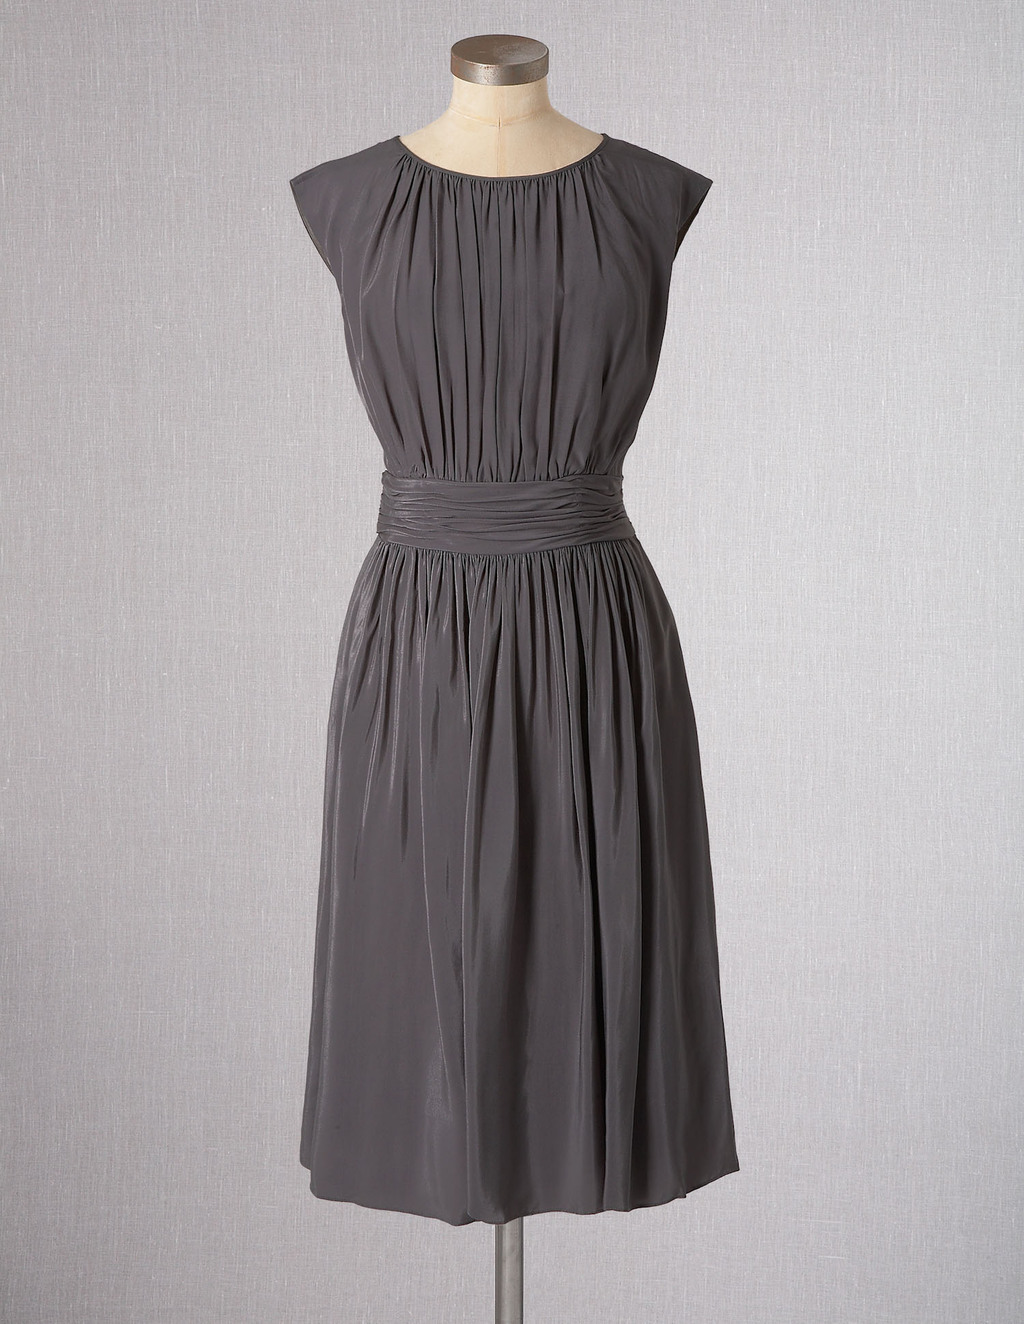 Selina Dress - neckline: round neck; sleeve style: capped; fit: fitted at waist; pattern: plain; style: blouson; waist detail: fitted waist; bust detail: ruching/gathering/draping/layers/pintuck pleats at bust; predominant colour: charcoal; occasions: casual; length: on the knee; fibres: viscose/rayon - 100%; hip detail: soft pleats at hip/draping at hip/flared at hip; sleeve length: sleeveless; pattern type: fabric; texture group: other - light to midweight; season: s/s 2013